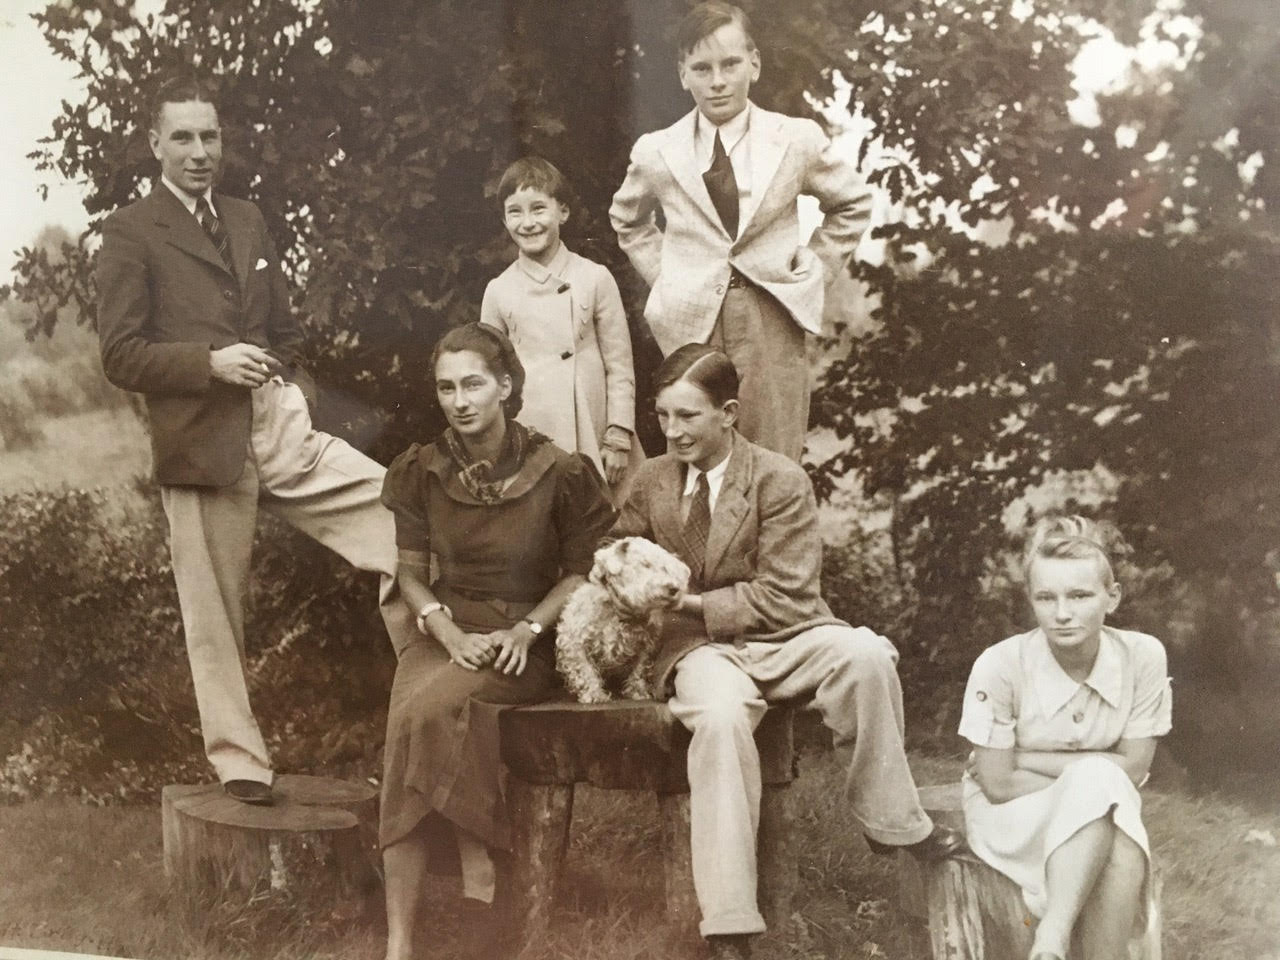 Neil, Mona, Angela, Alistair, Hector and Sheila. Circa 1936